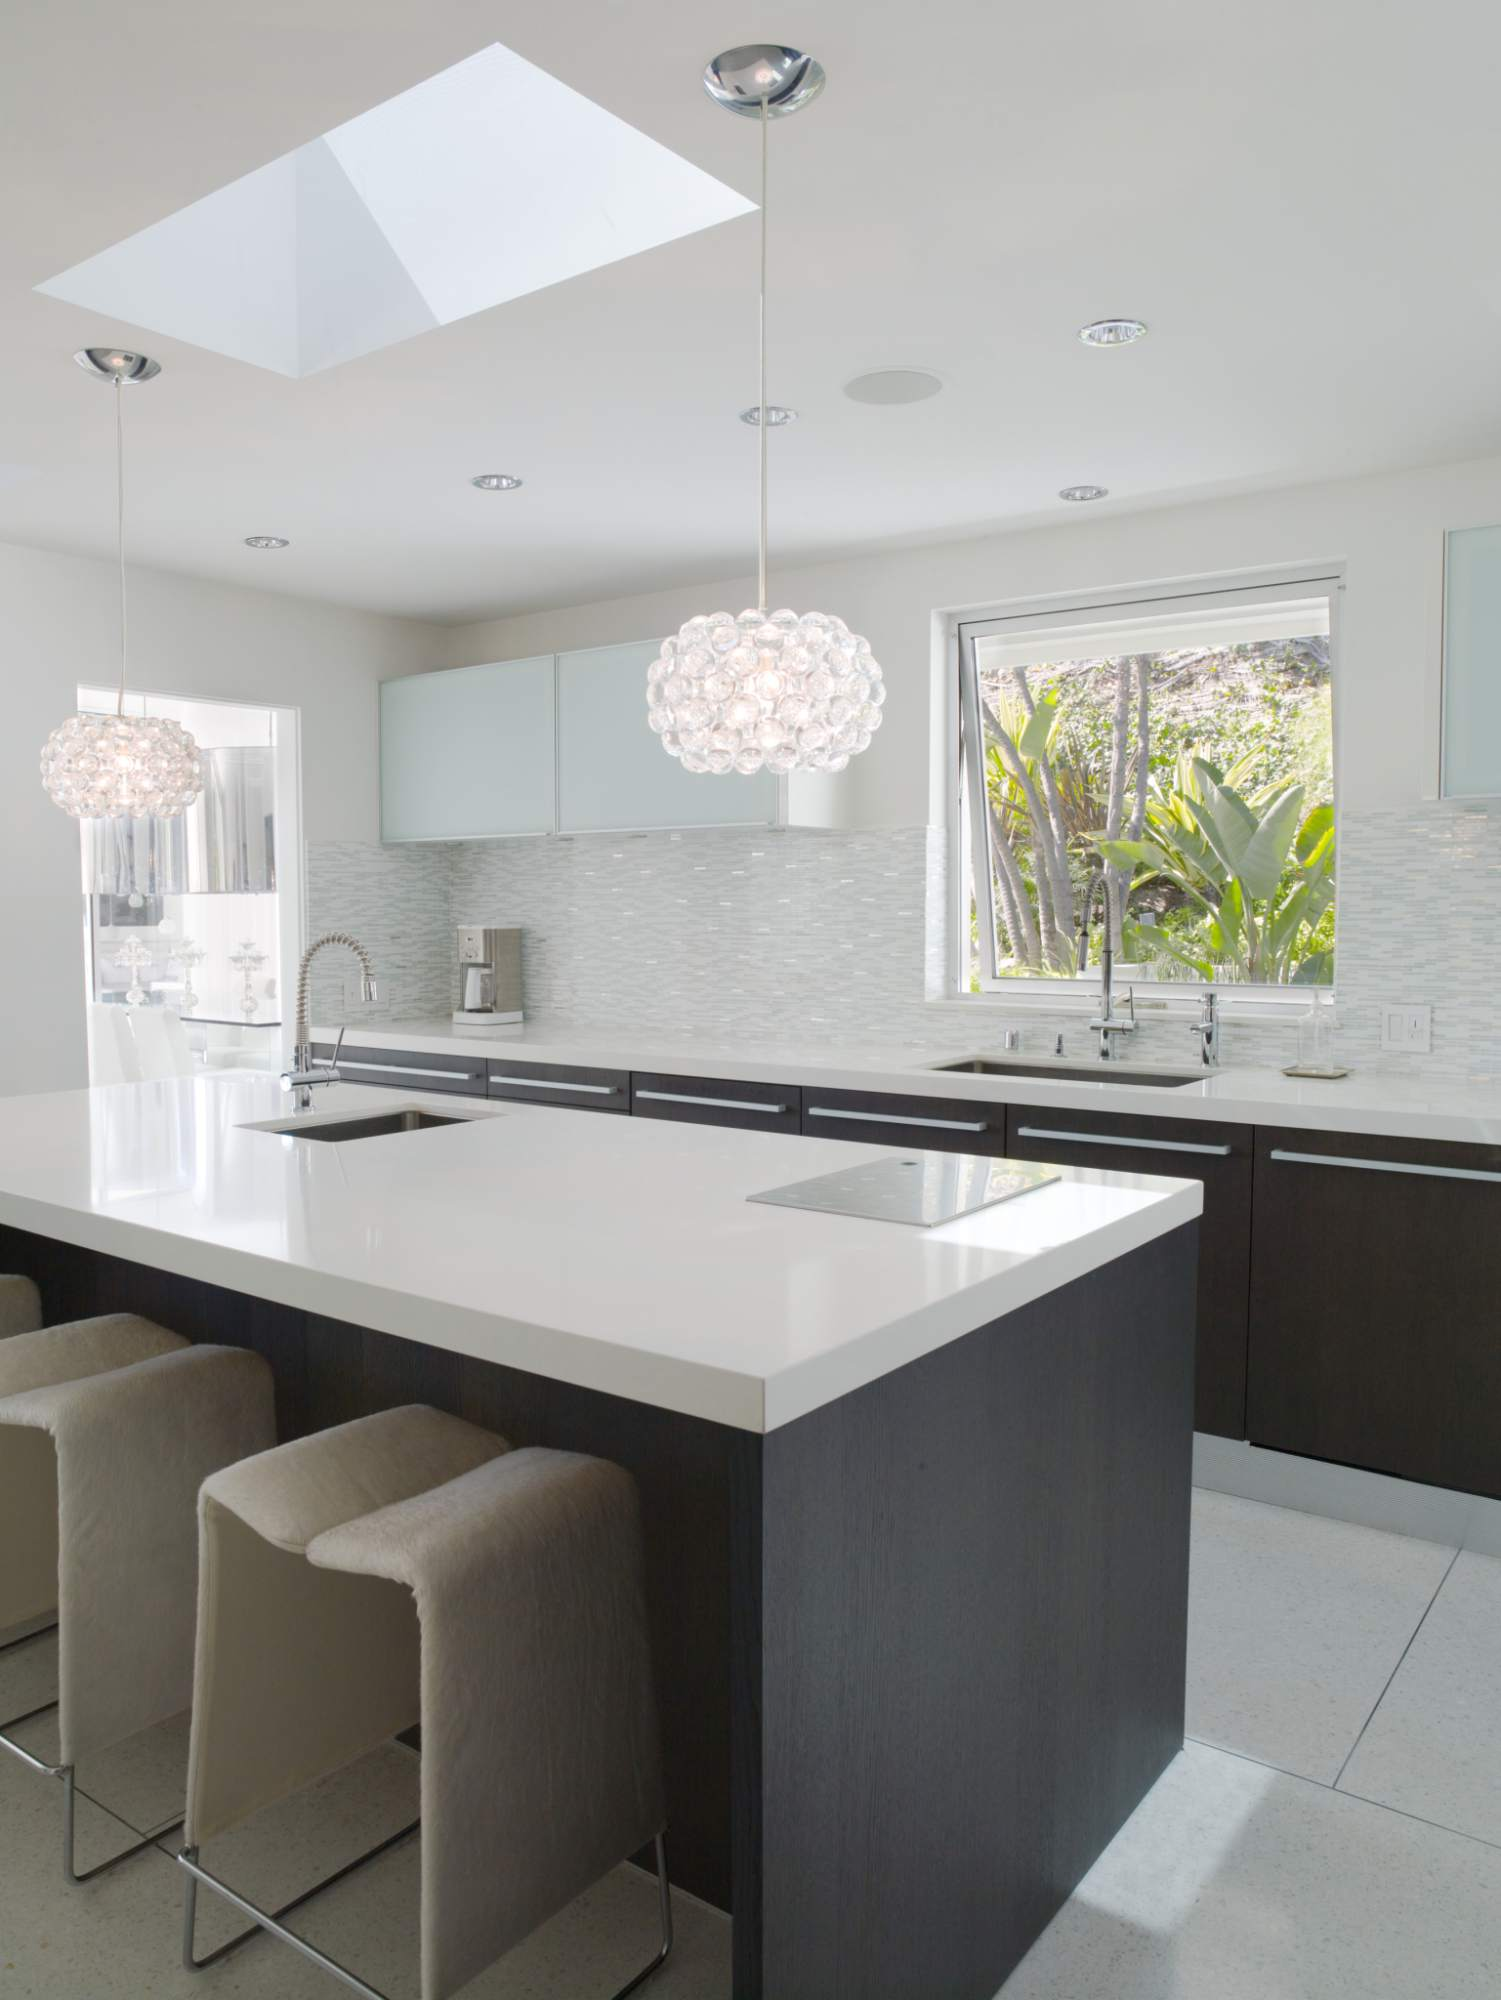 White upper cabinets with white backsplash and white Countertops with dark base cabinets